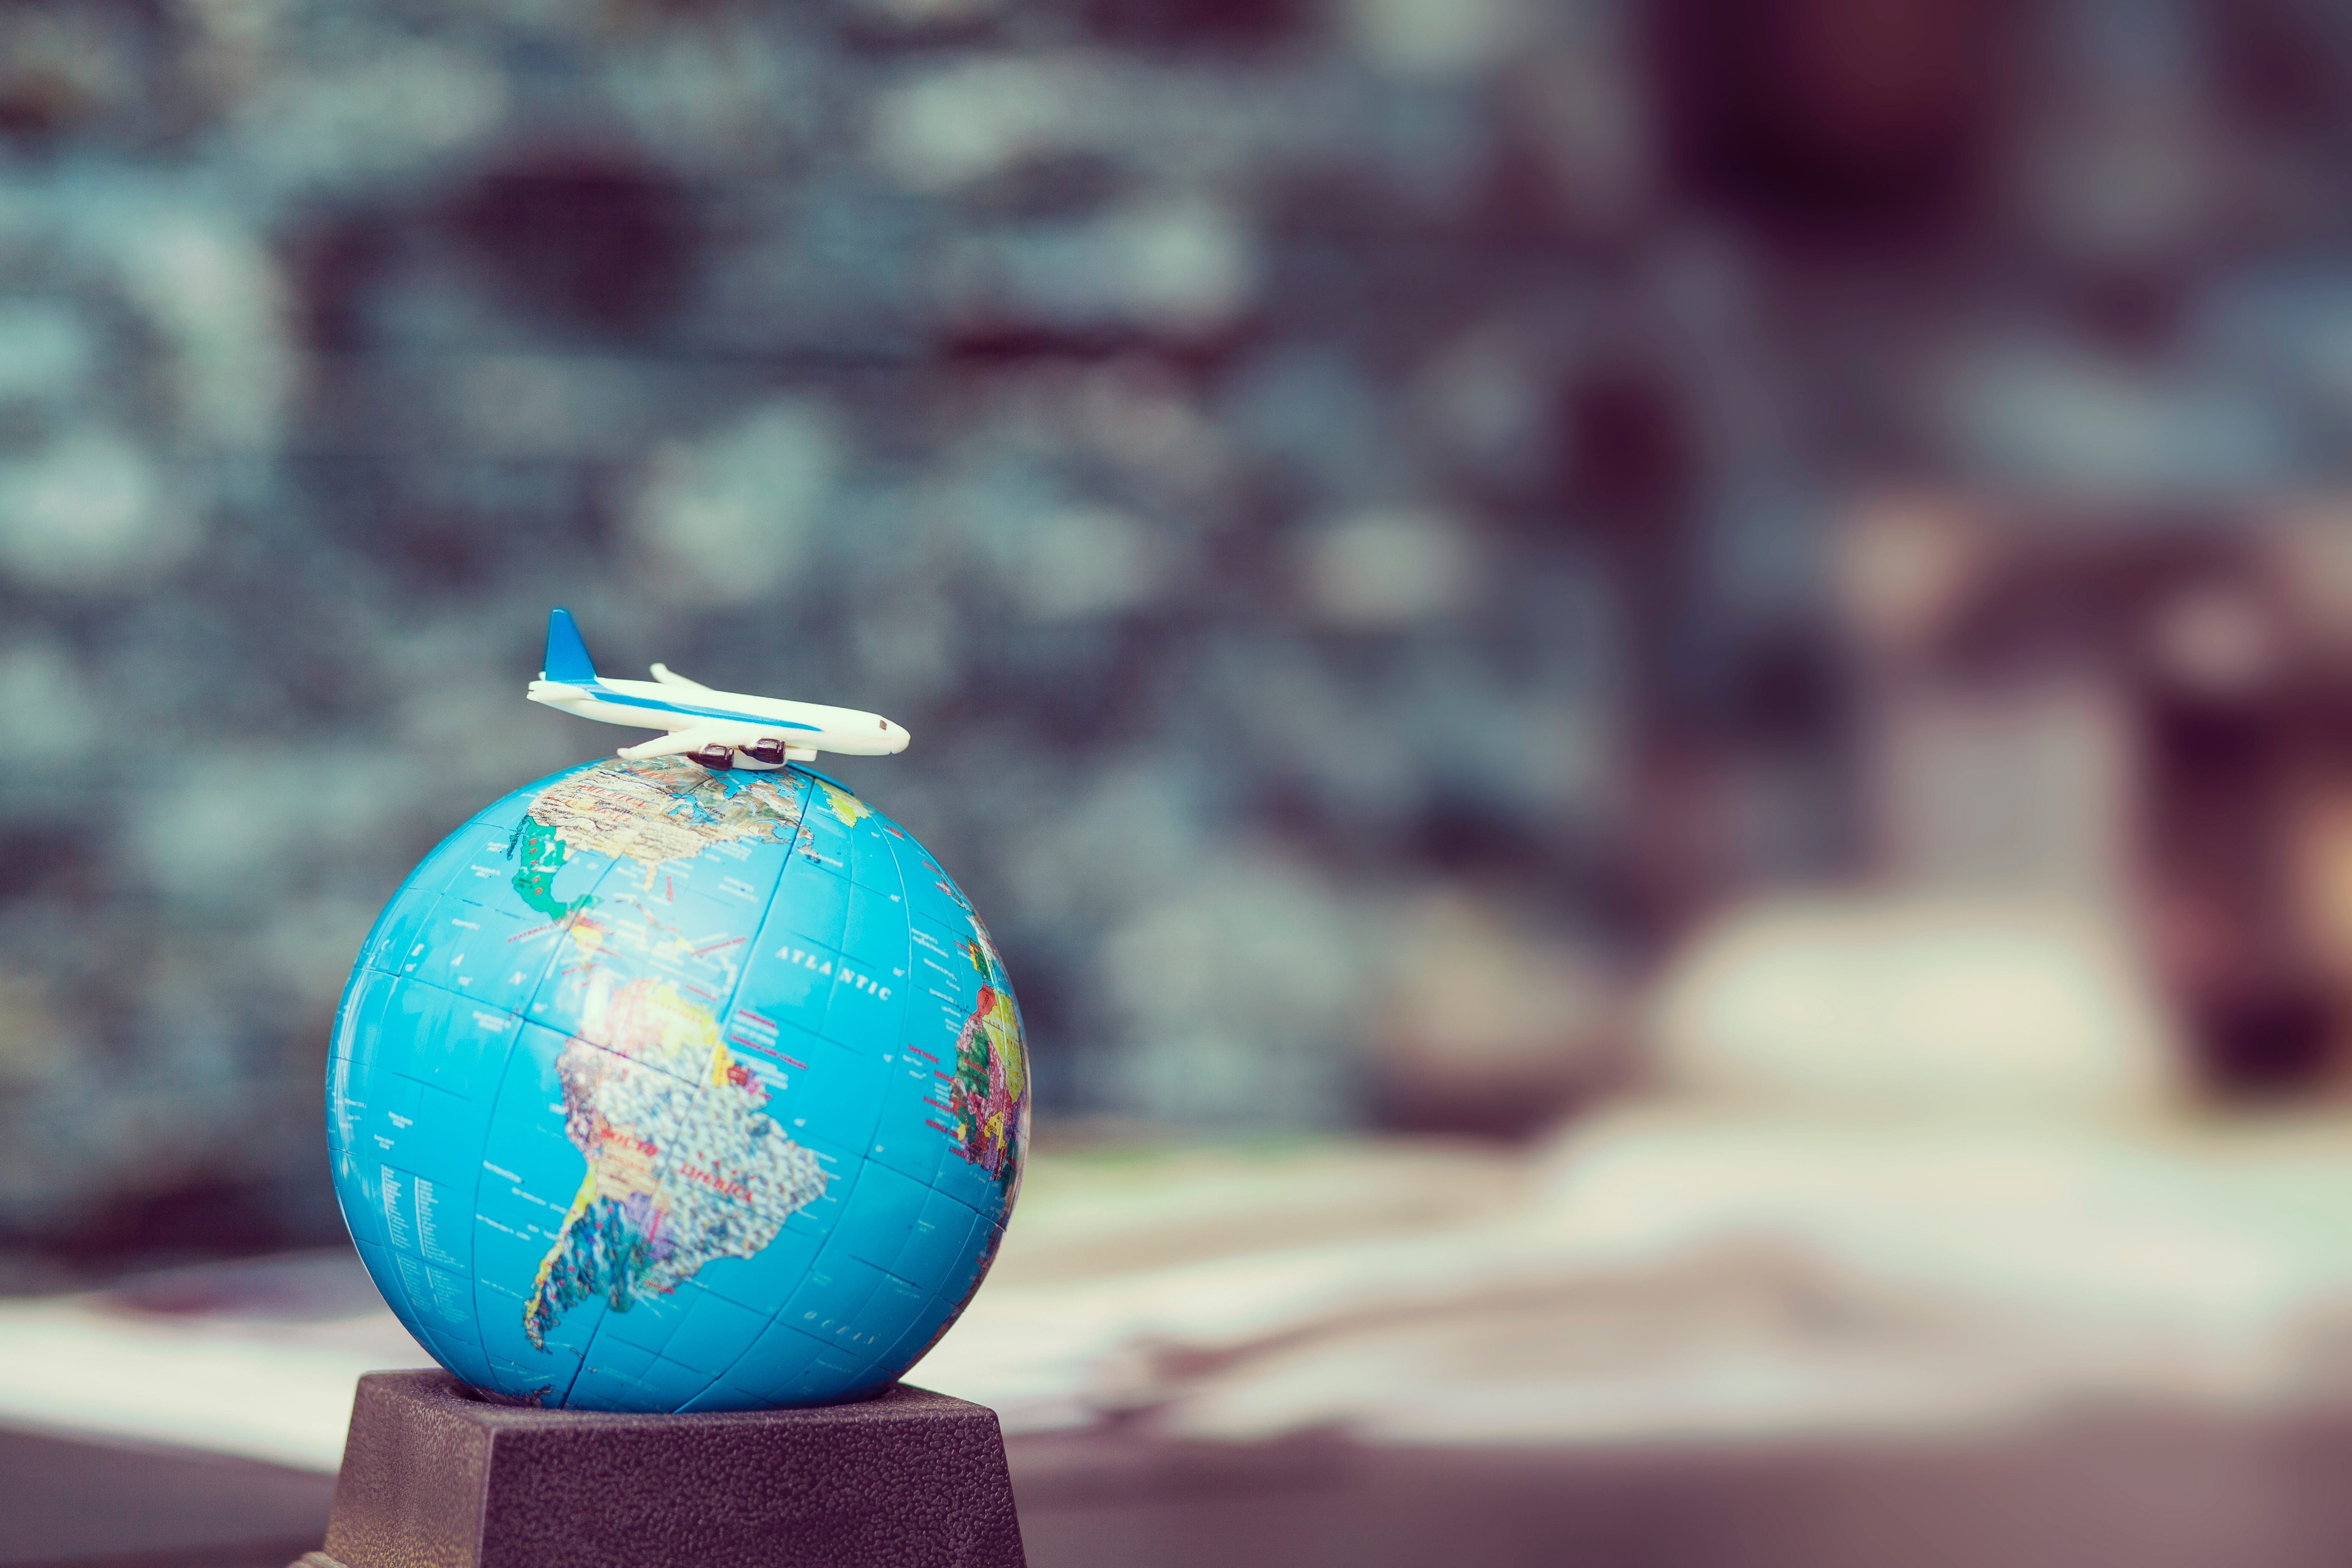 Selective focus shot of globe with airplane on desk; image by Frank Vex, via Unsplash.com.